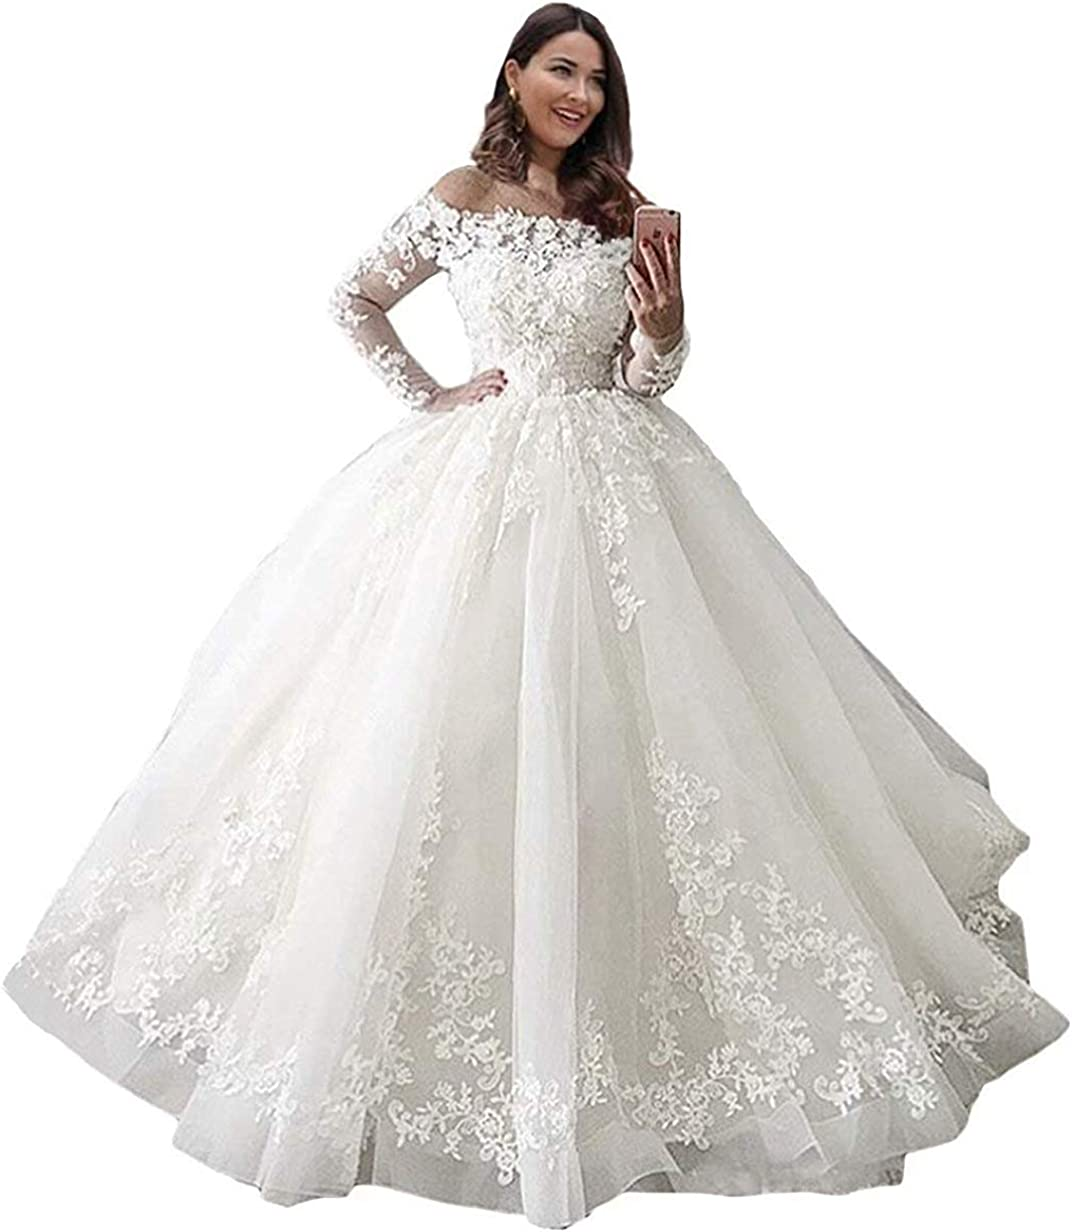 Melisa Off The Shoulder Long Sleeves Lace Applique Wedding Dresses for Bride with Train Bridal Ball Gowns Plus Size